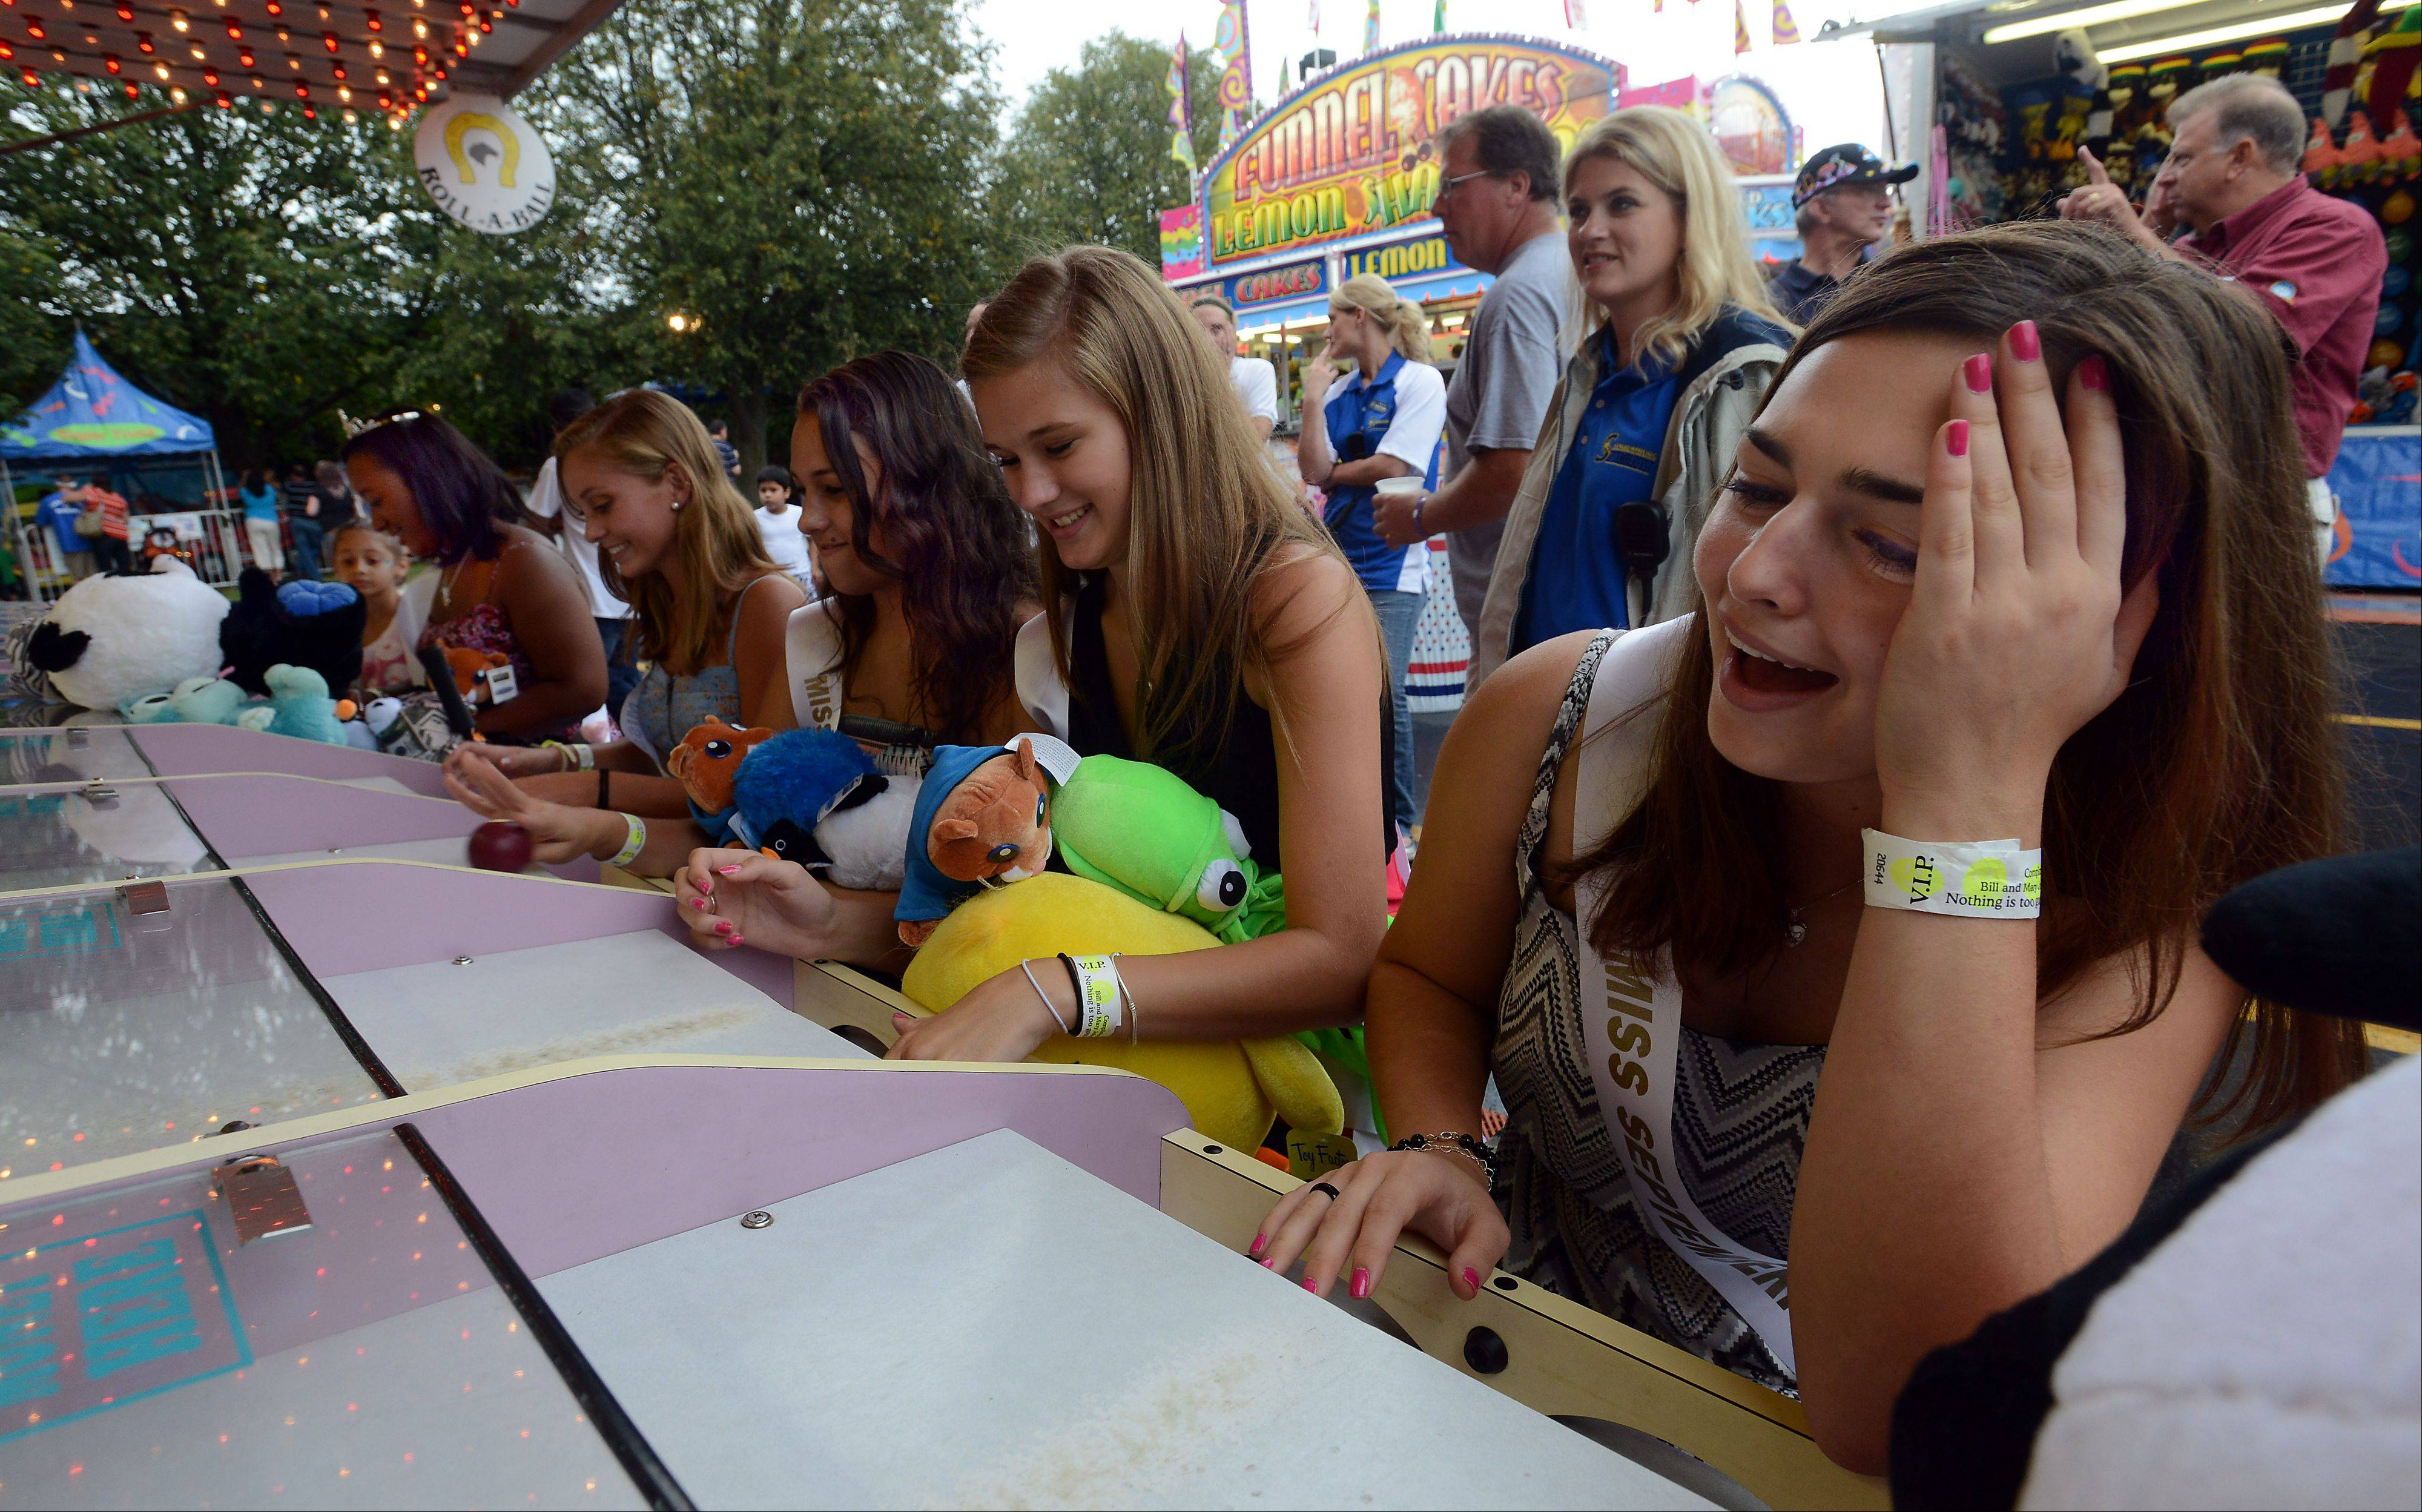 Andreya De Larco, 17, of Schaumburg who sits on the Schaumburg queen court, plays one of the games at Septemberfest reacting to a not-so-great score on Saturday. The fest continues through Monday.